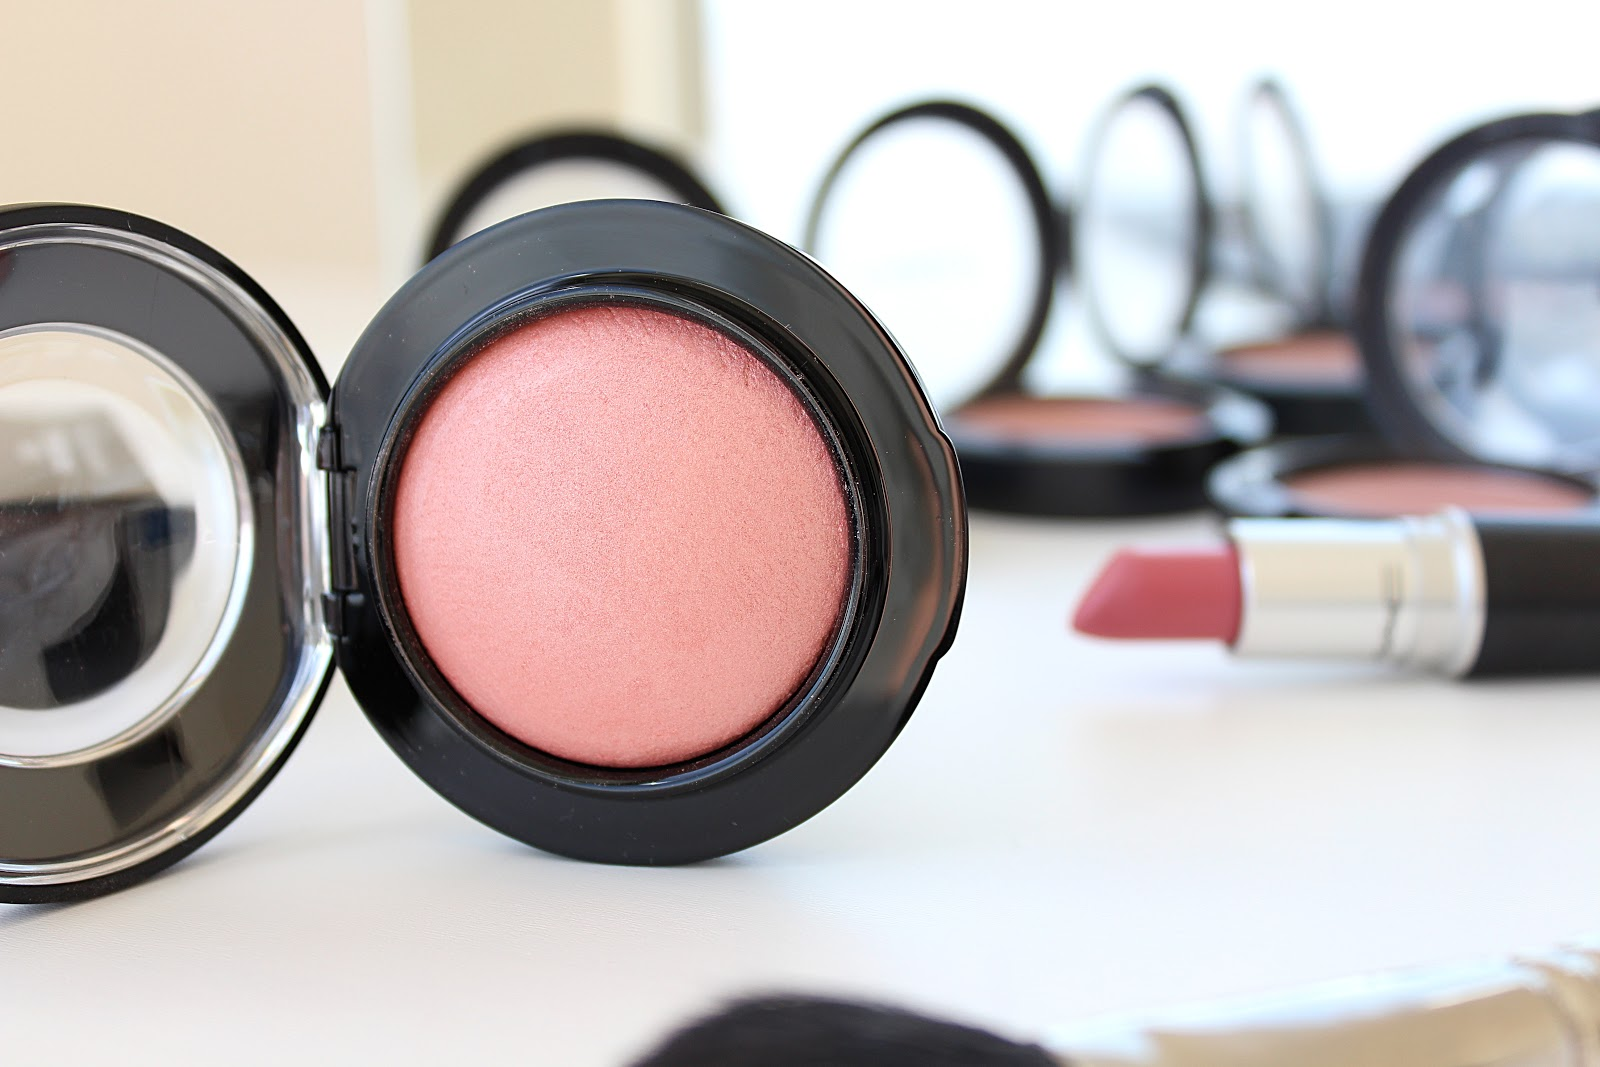 MAC Mineralize Blush in New Romance - Review and Swatches